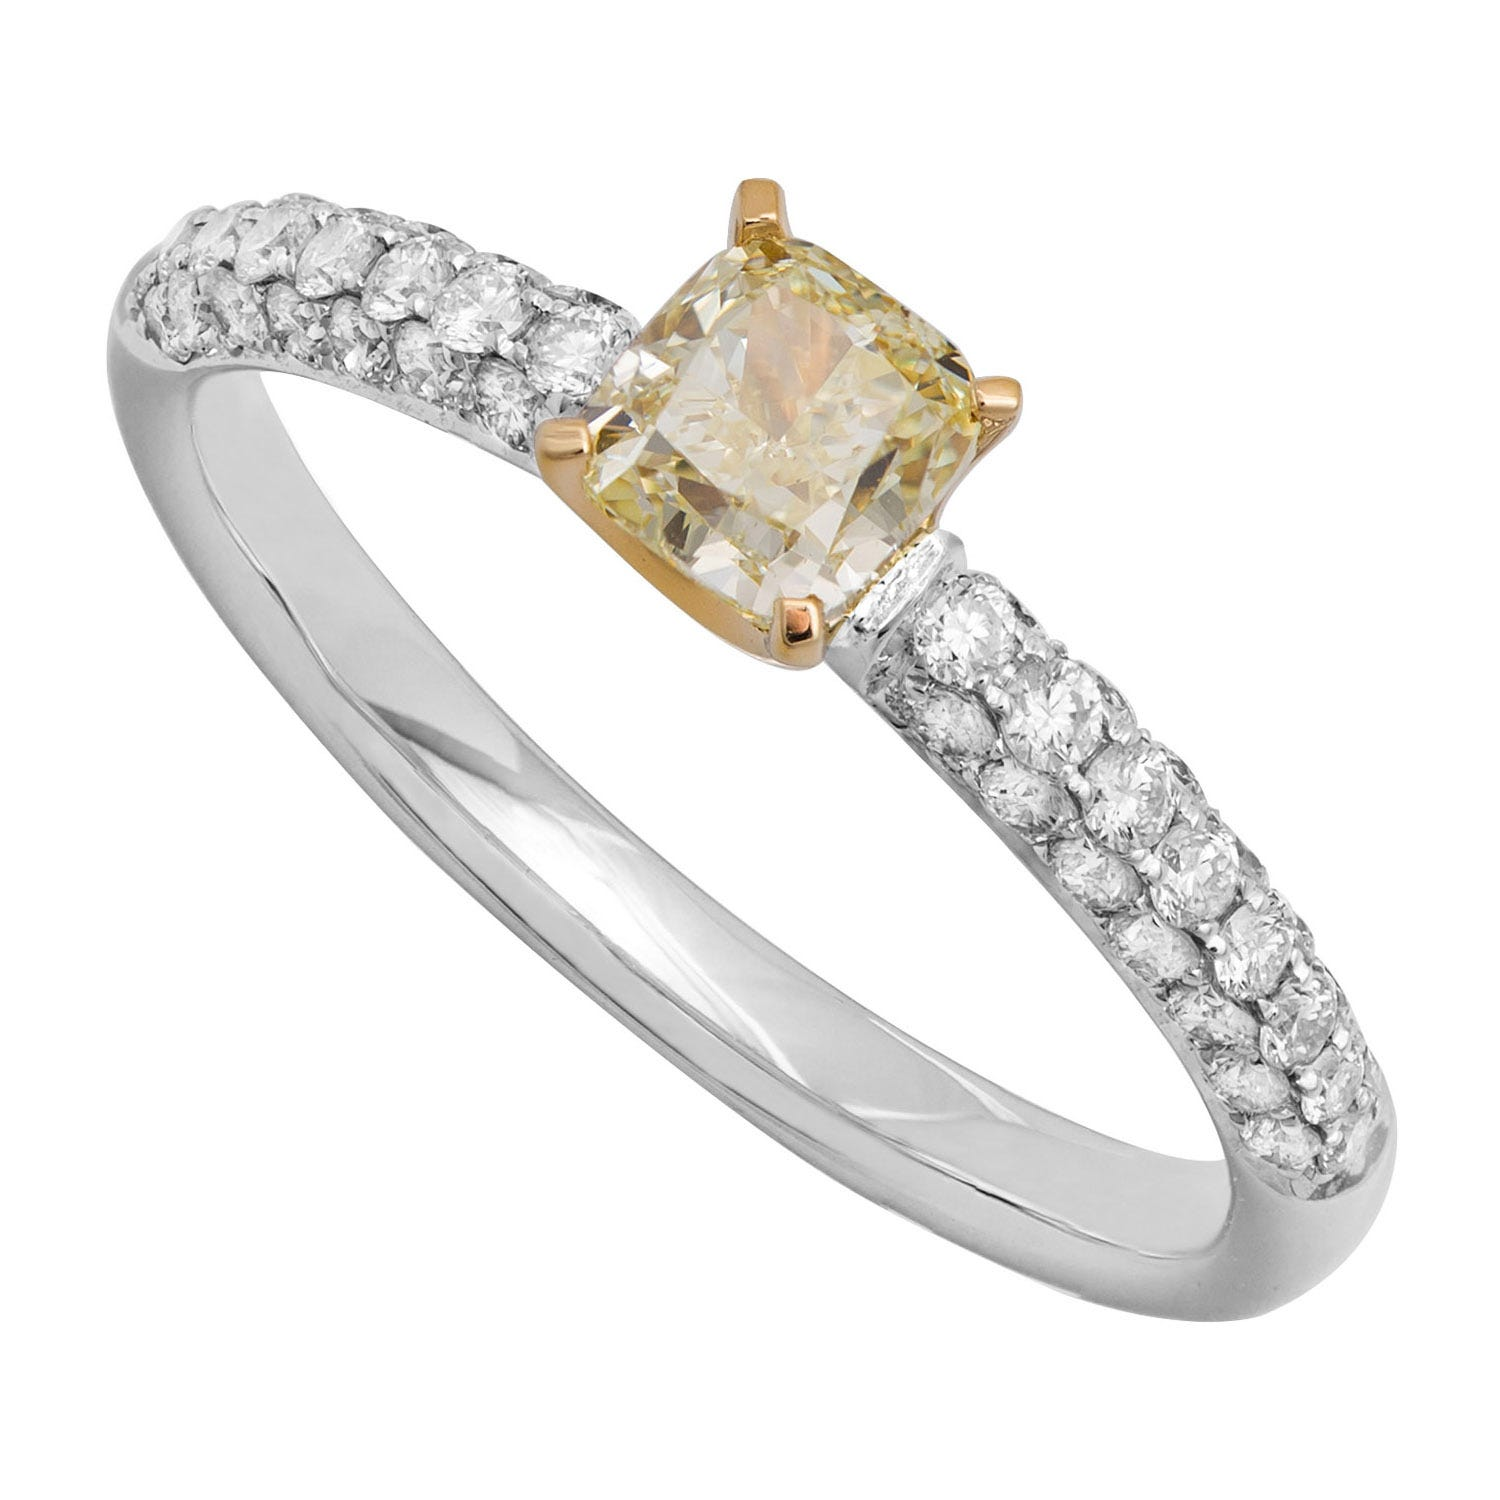 18ct white gold 0.85 carat cushion cut yellow diamond shoulder-set ring